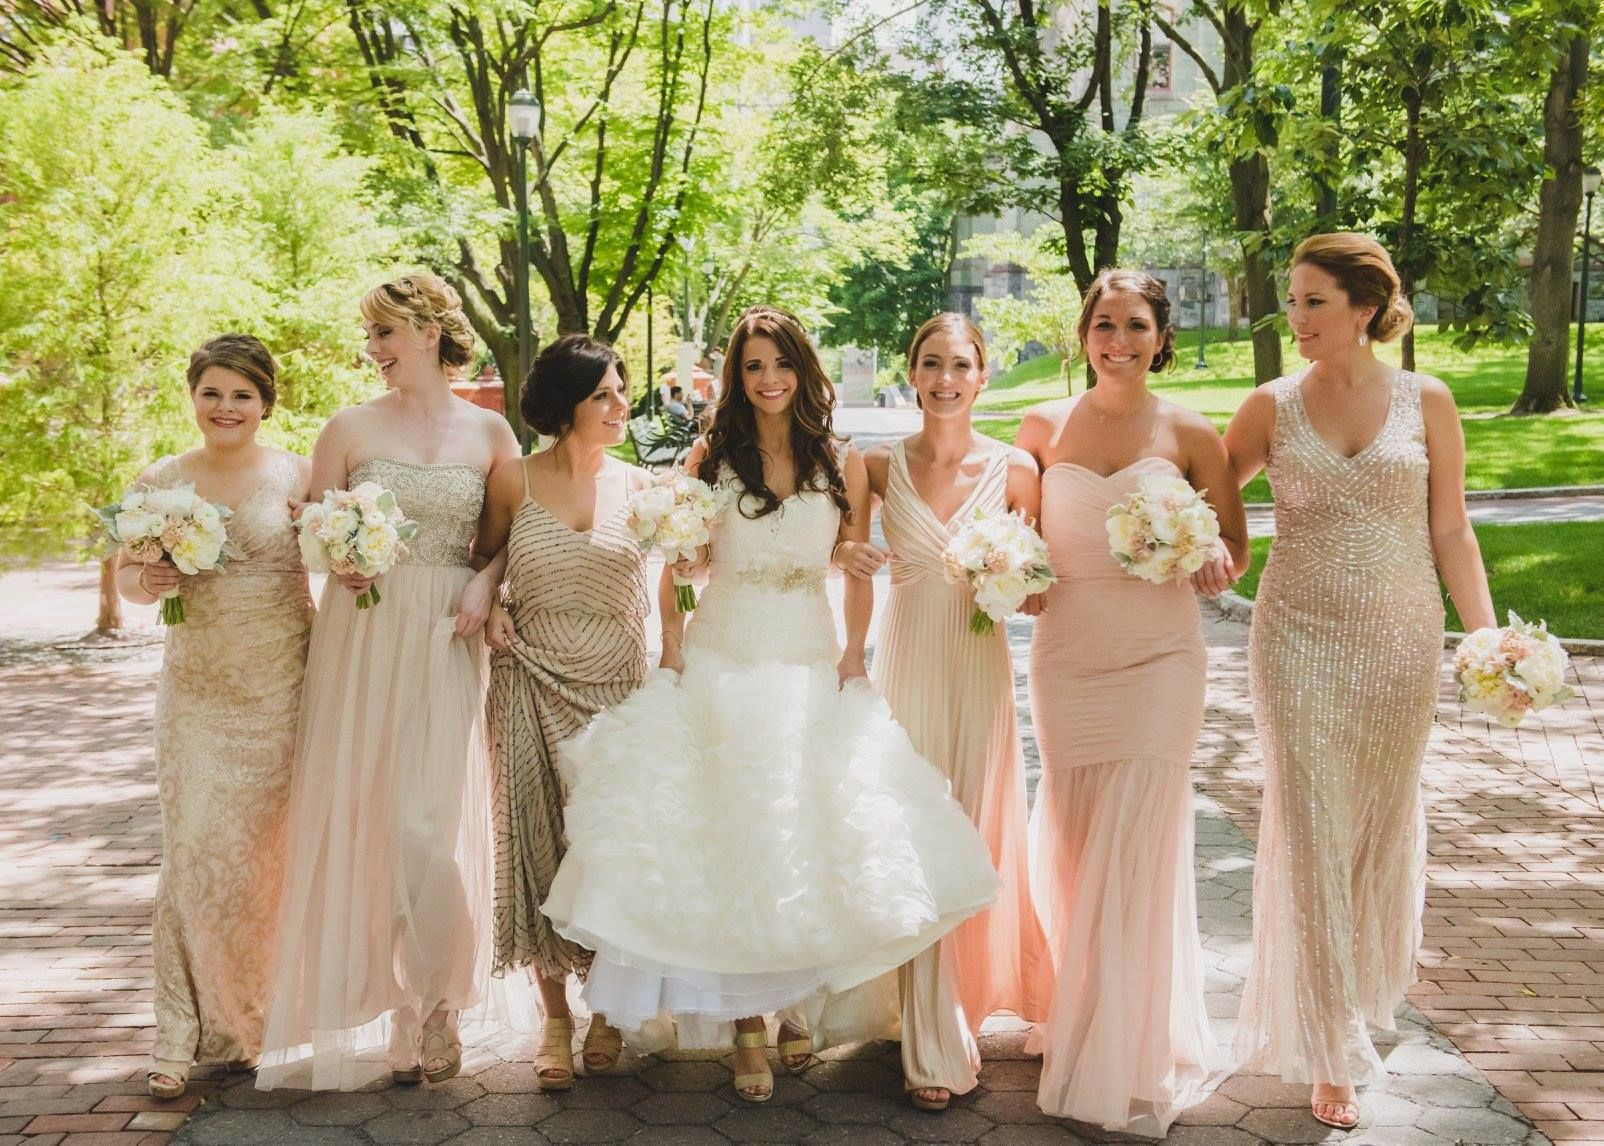 Brideside stylist chelsey rose and her bridesmaids blush glamorous philadelphia wedding on the moshulu by diamonds details ombrellifo Image collections